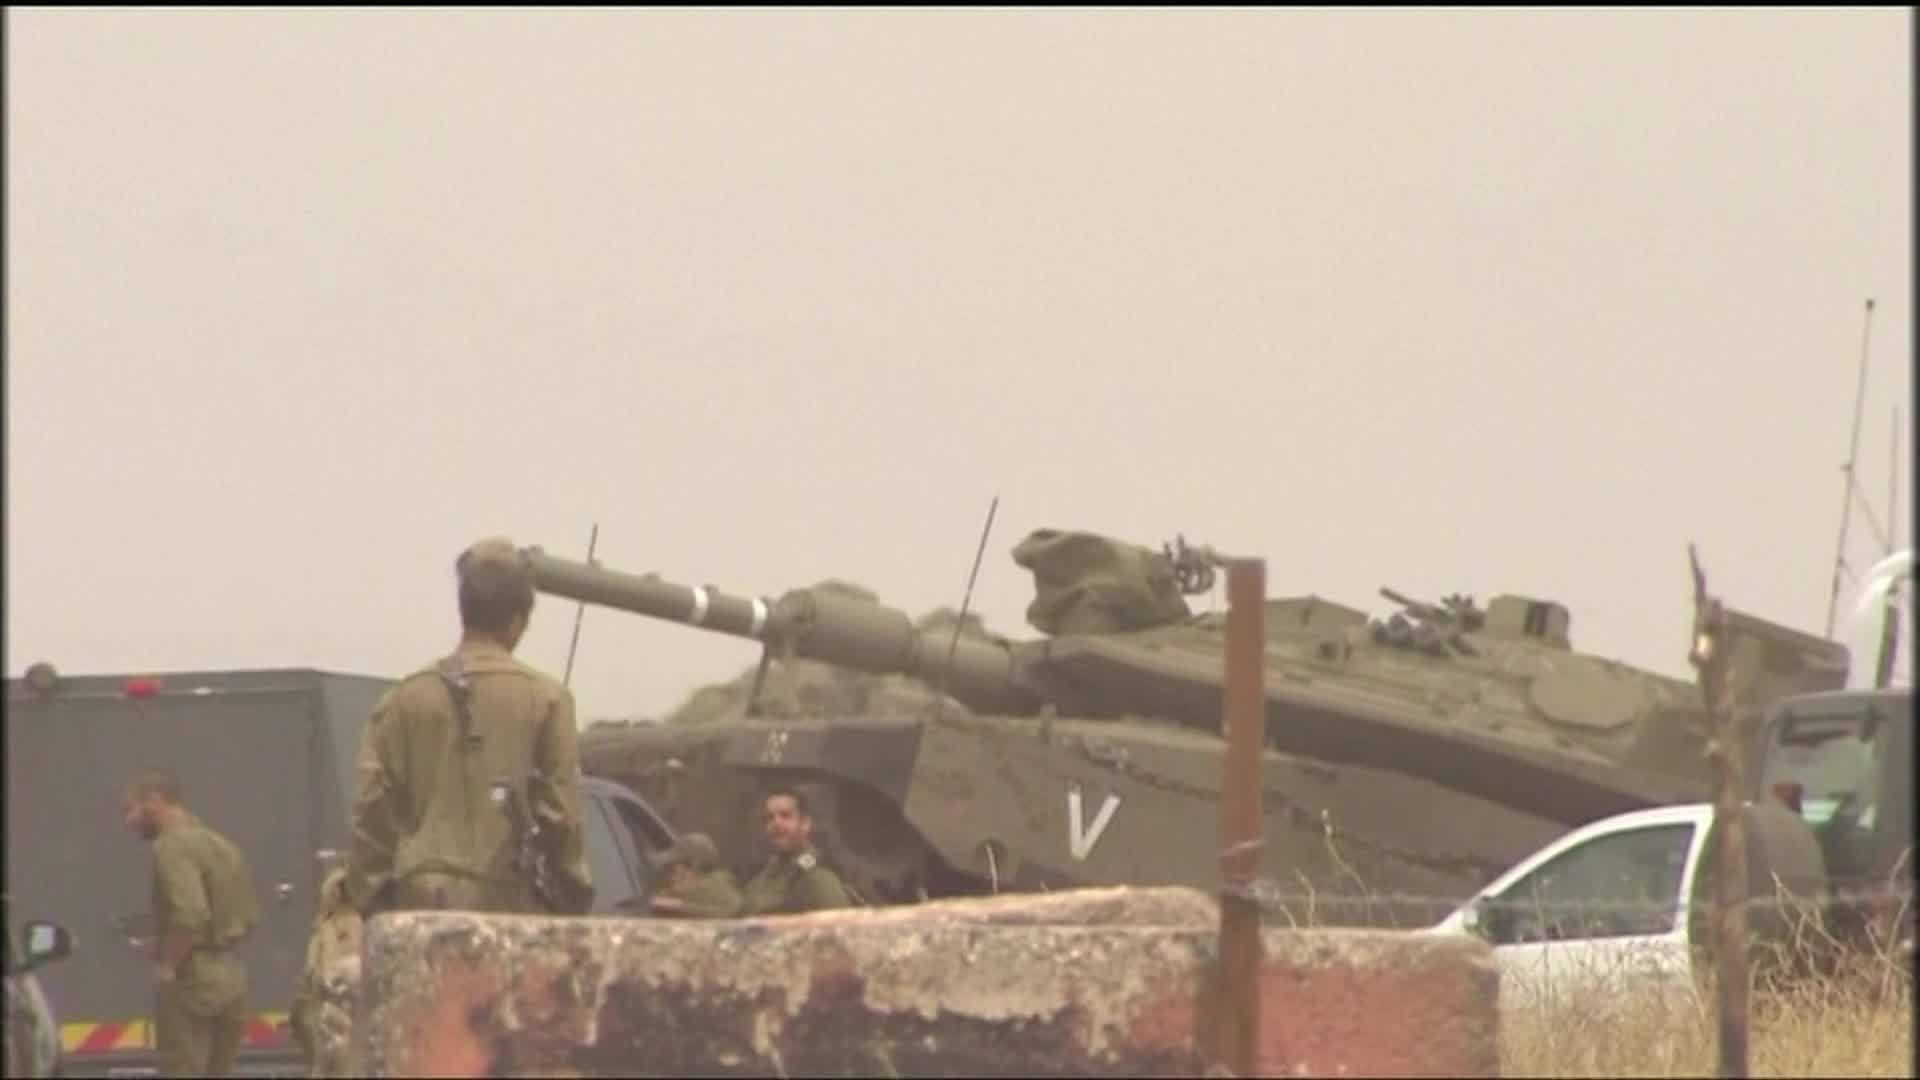 VIDEO__Iran_and_Israel_clash_in_Syria__M_7_20190121012650